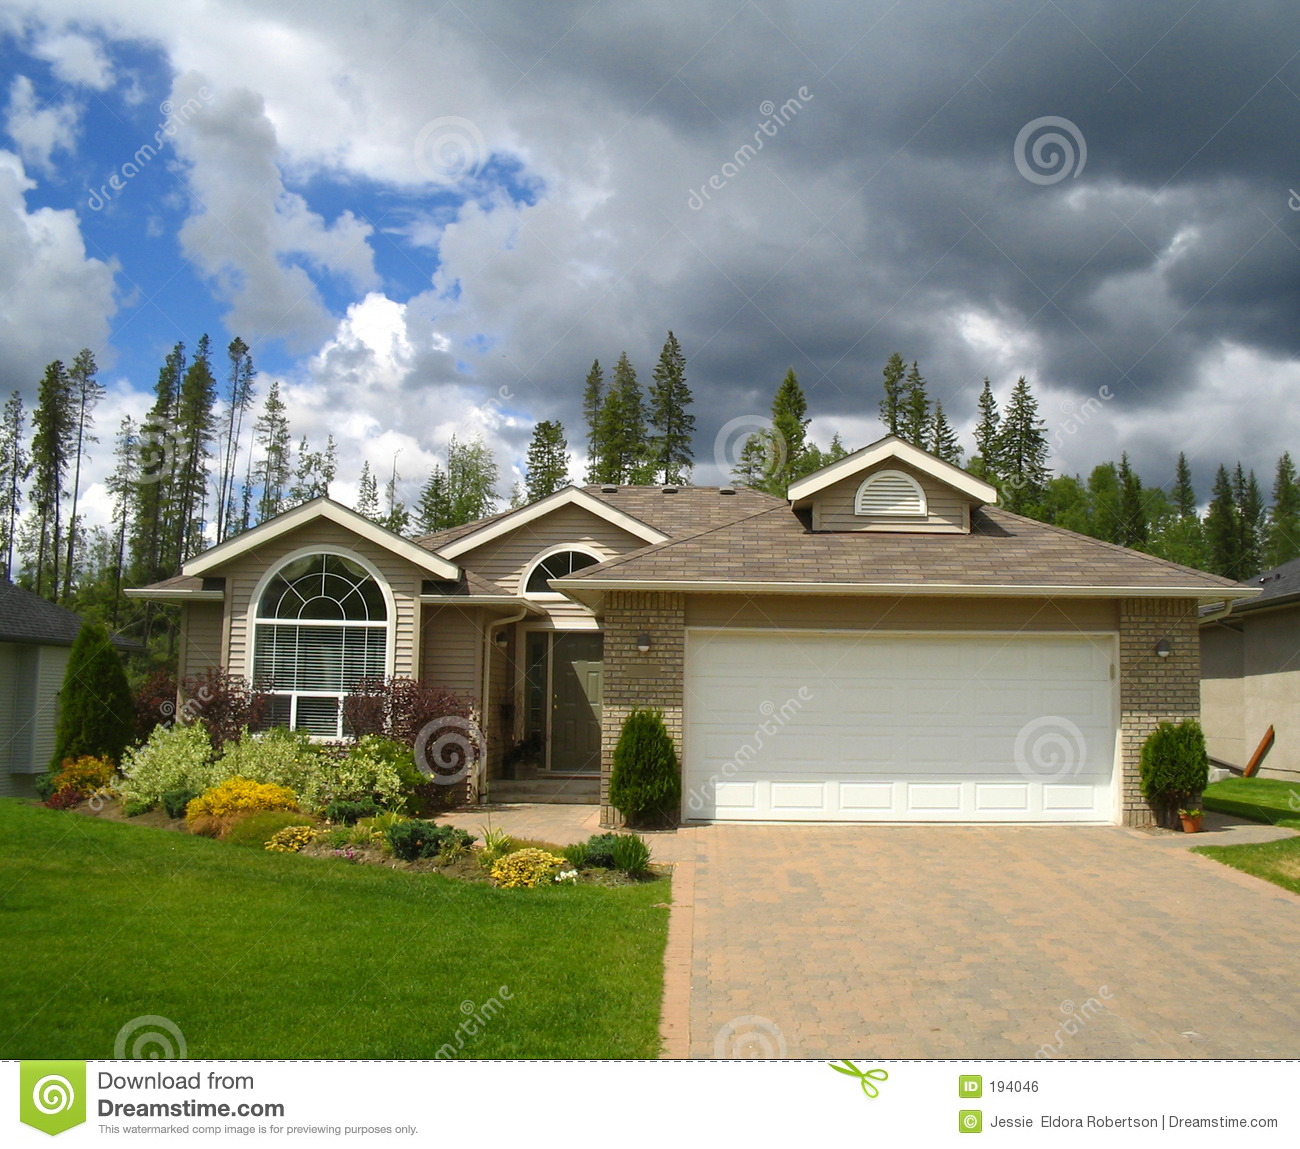 Storm clouds over nice house in the suburbs stock photo for Nice house photo